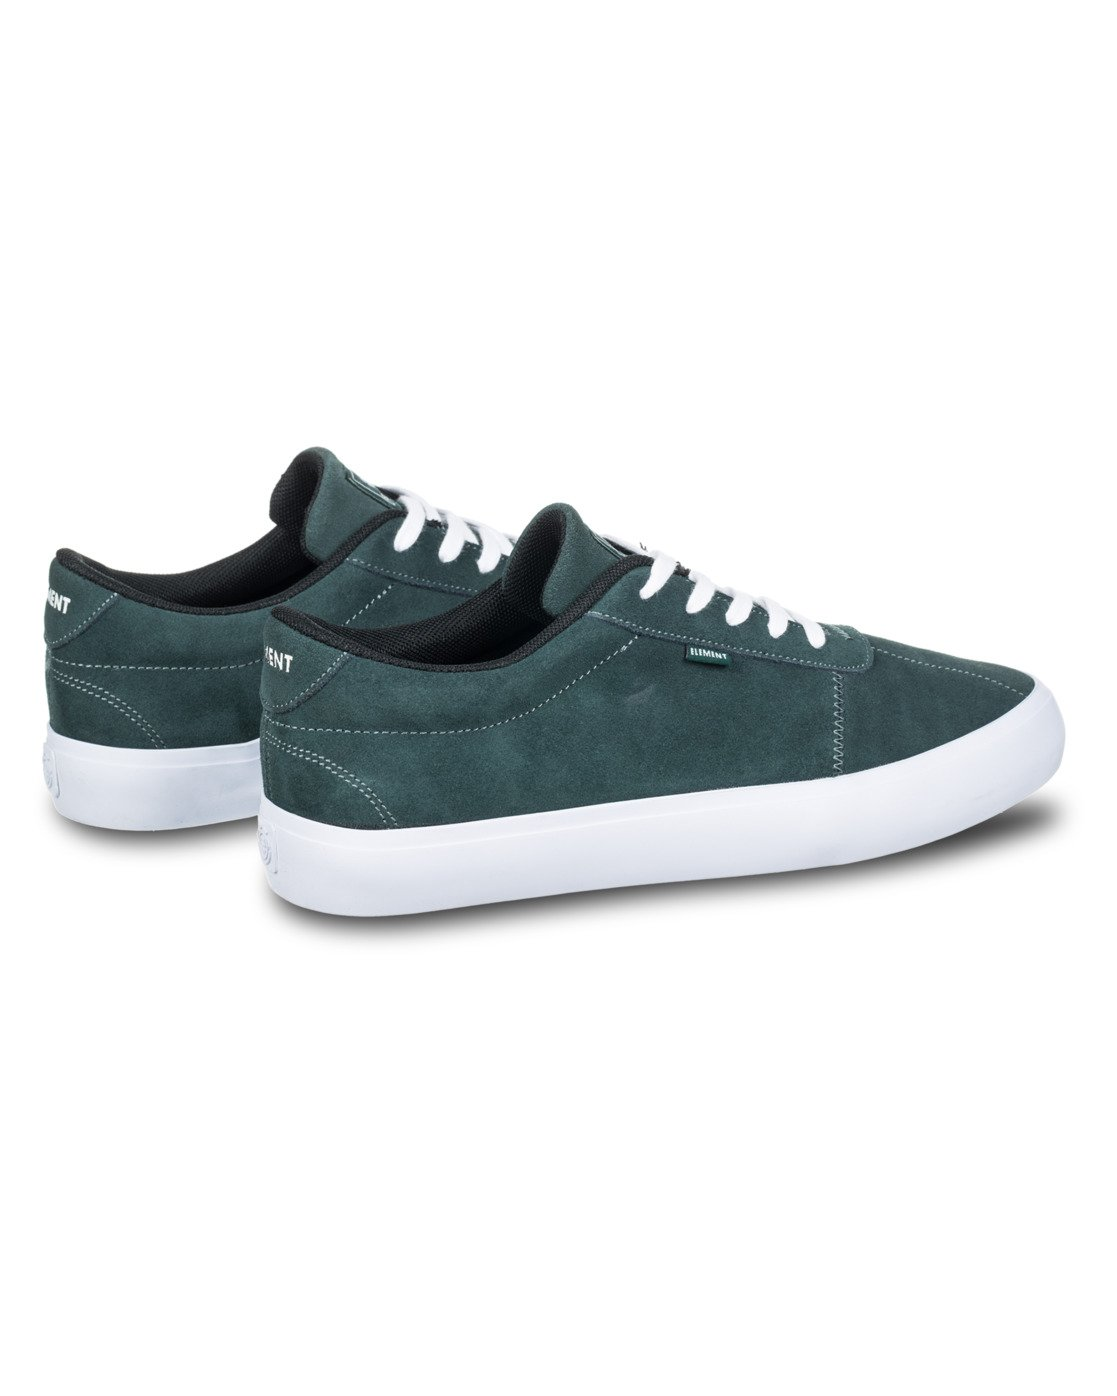 2 Sawyer - Shoes for Men Green W6SAW101 Element